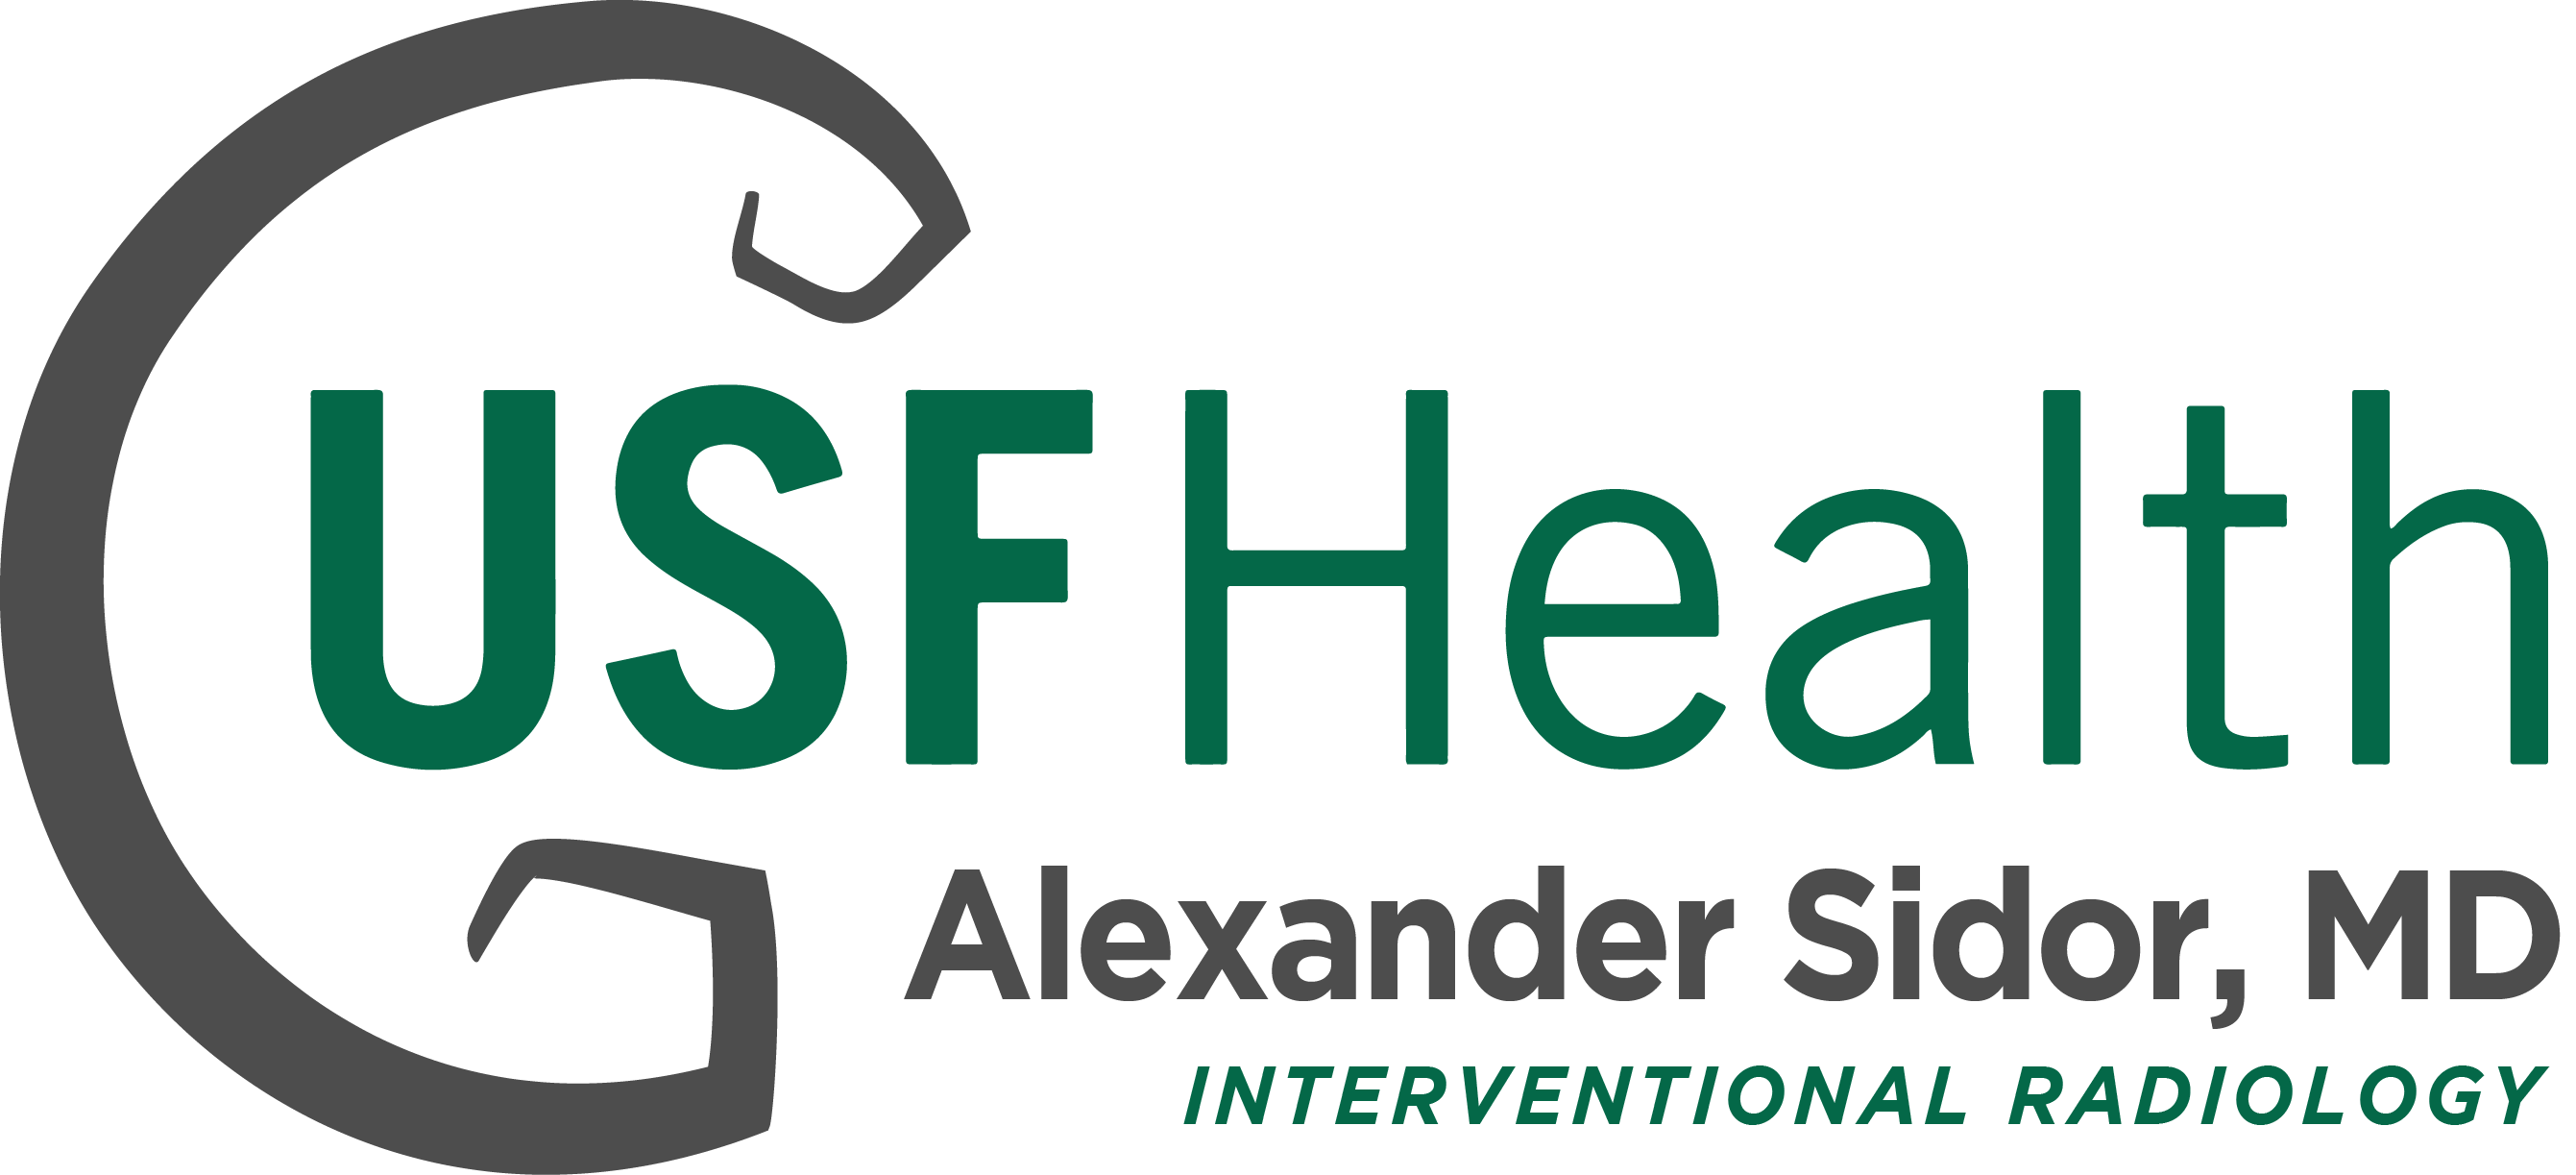 USF Interventional Radiology